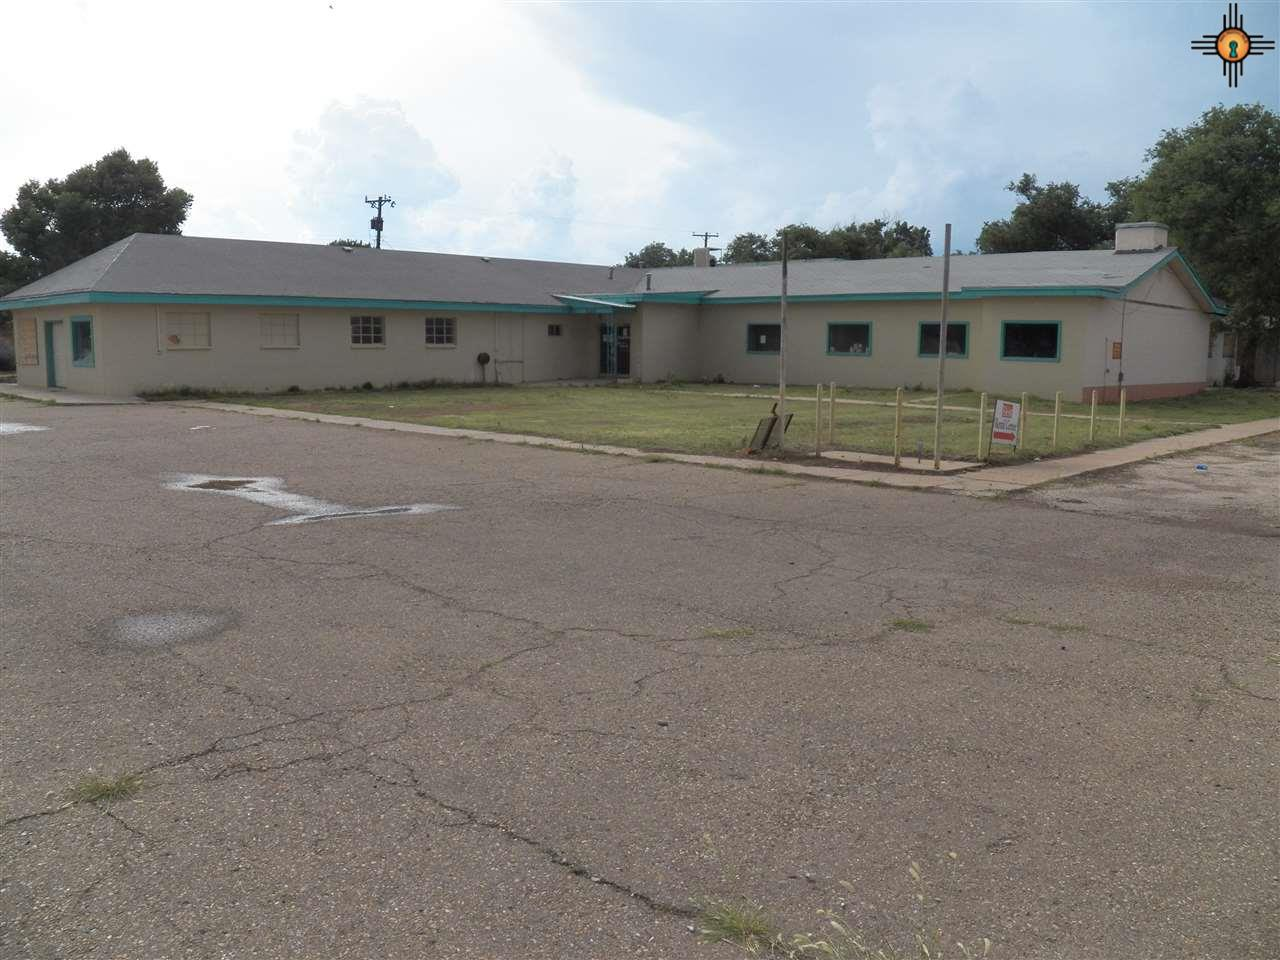 620 E 21st St, Clovis, NM 88101 - Clovis, NM real estate listing